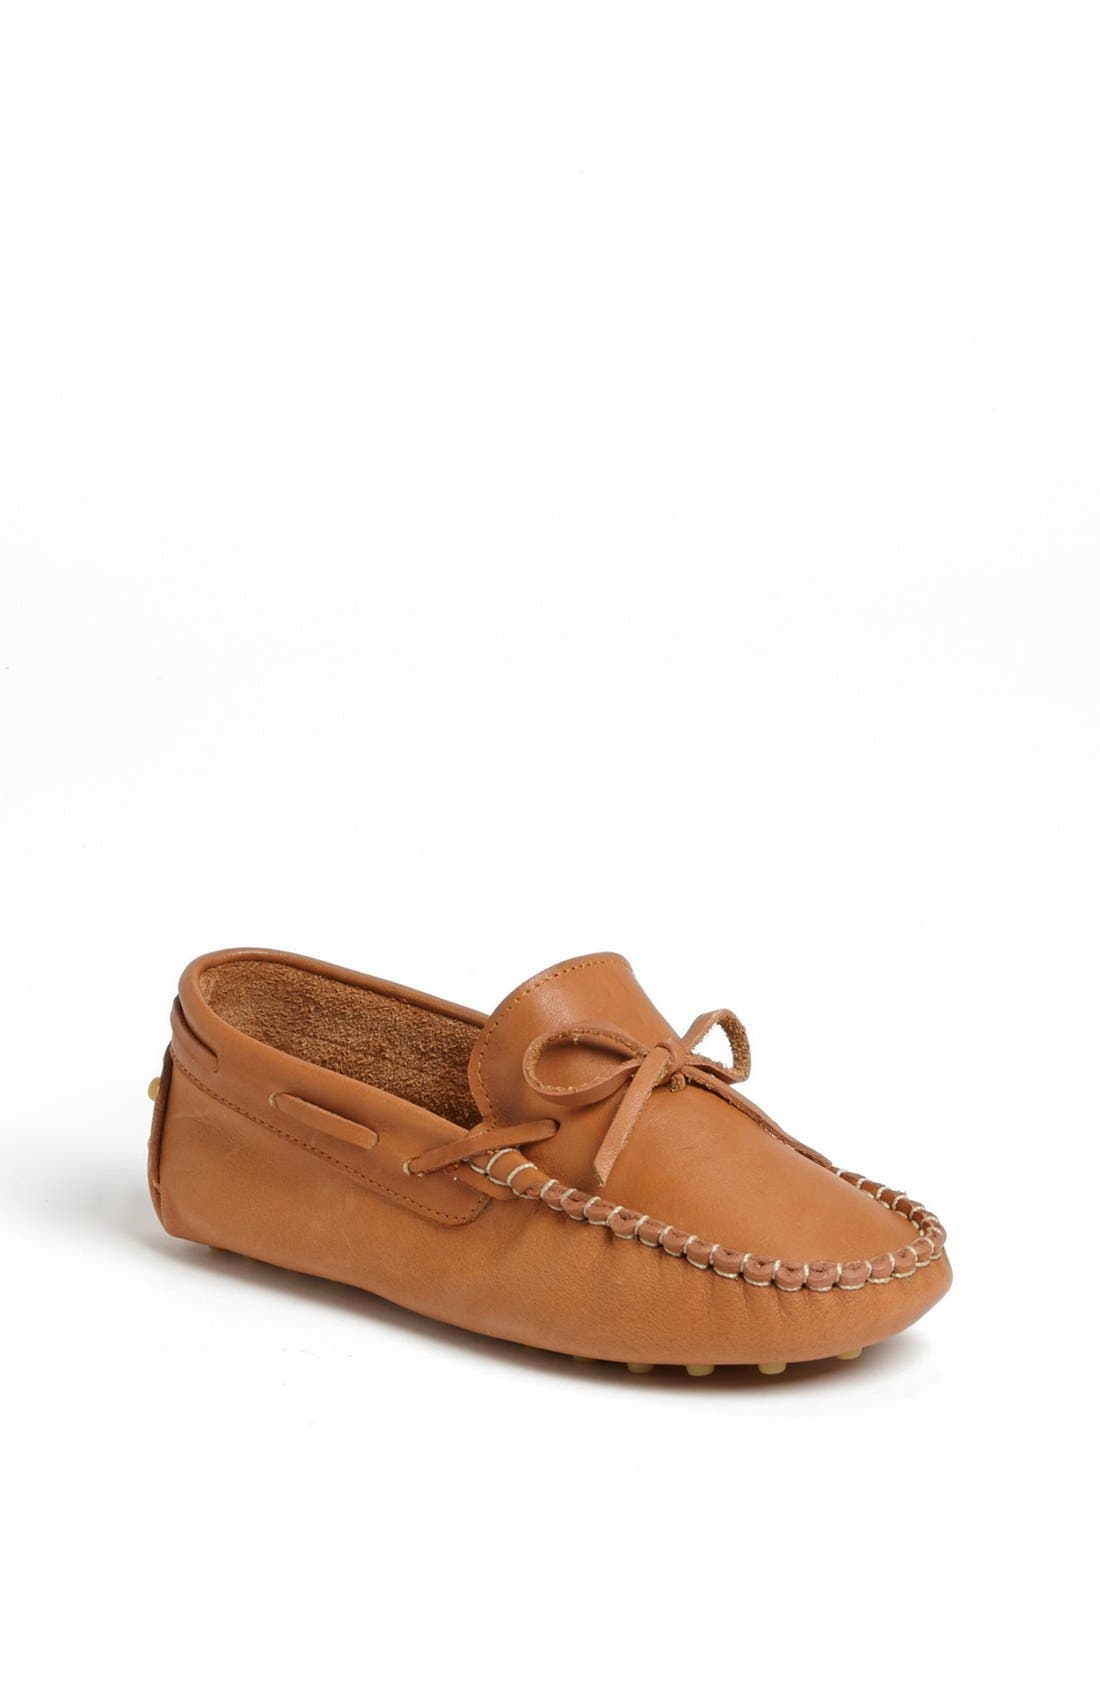 ELEPHANTITO Driver Loafer, Main, color, 219